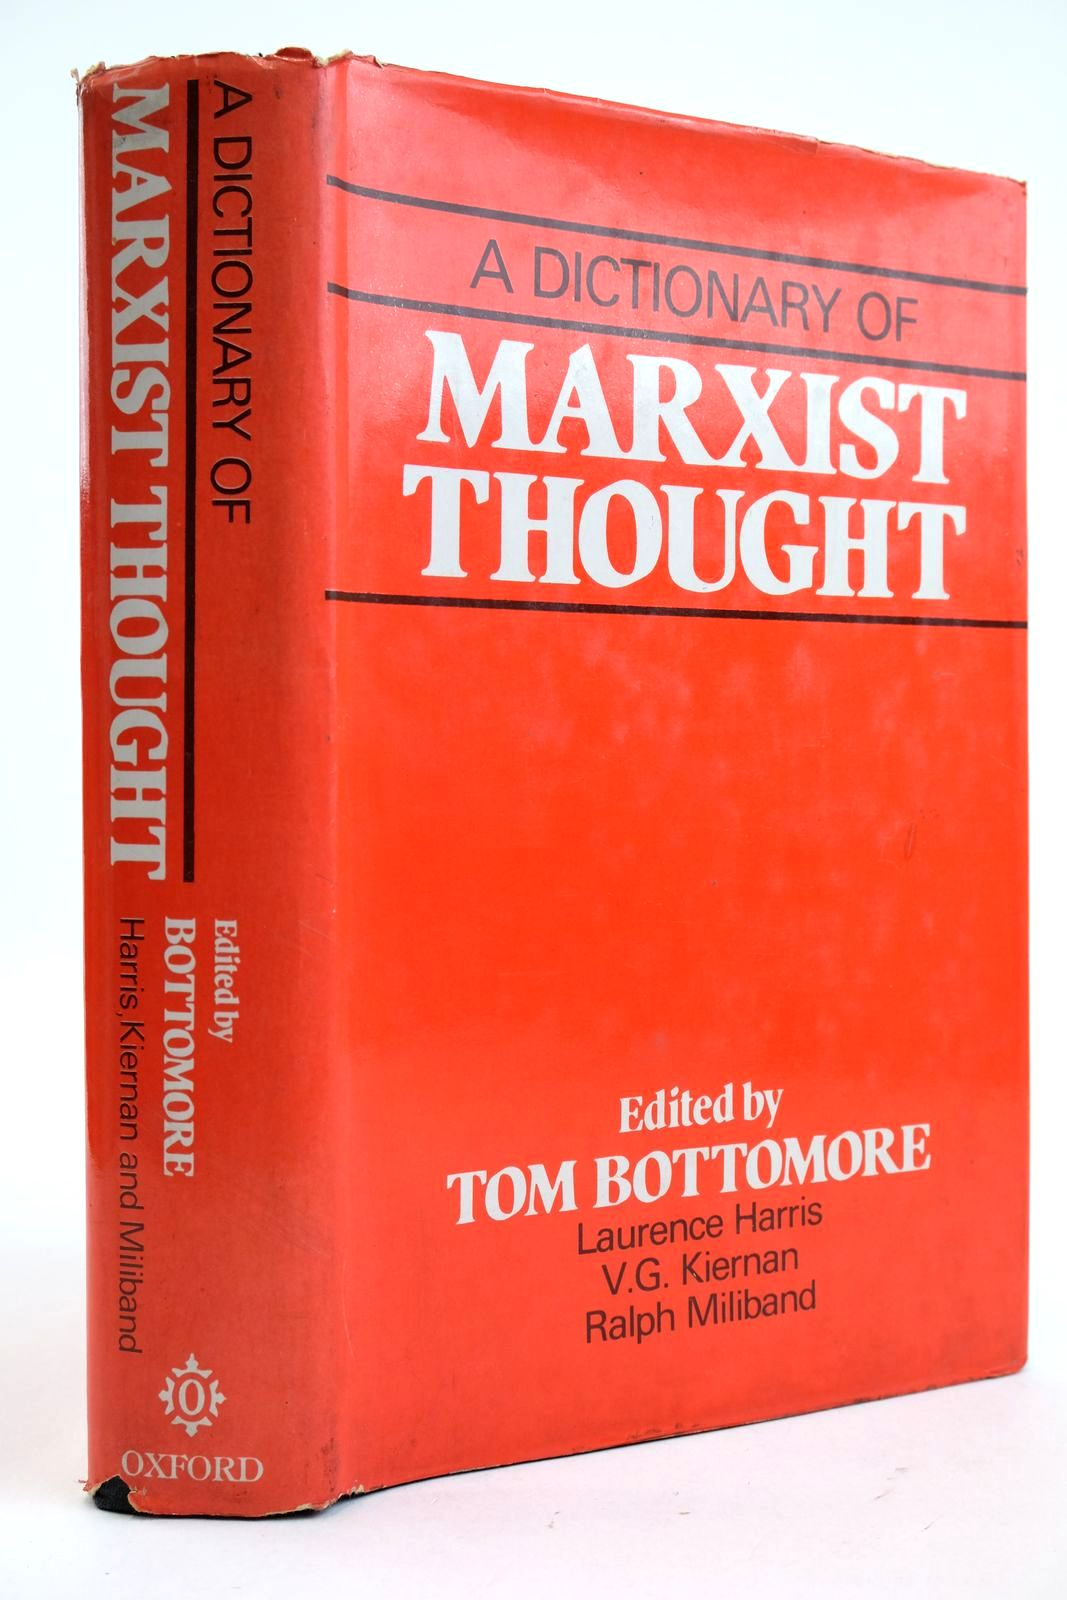 Photo of A DICTIONARY OF MARXIST THOUGHT written by Bottomore, Tom et al, published by Oxford University Press (STOCK CODE: 2132937)  for sale by Stella & Rose's Books